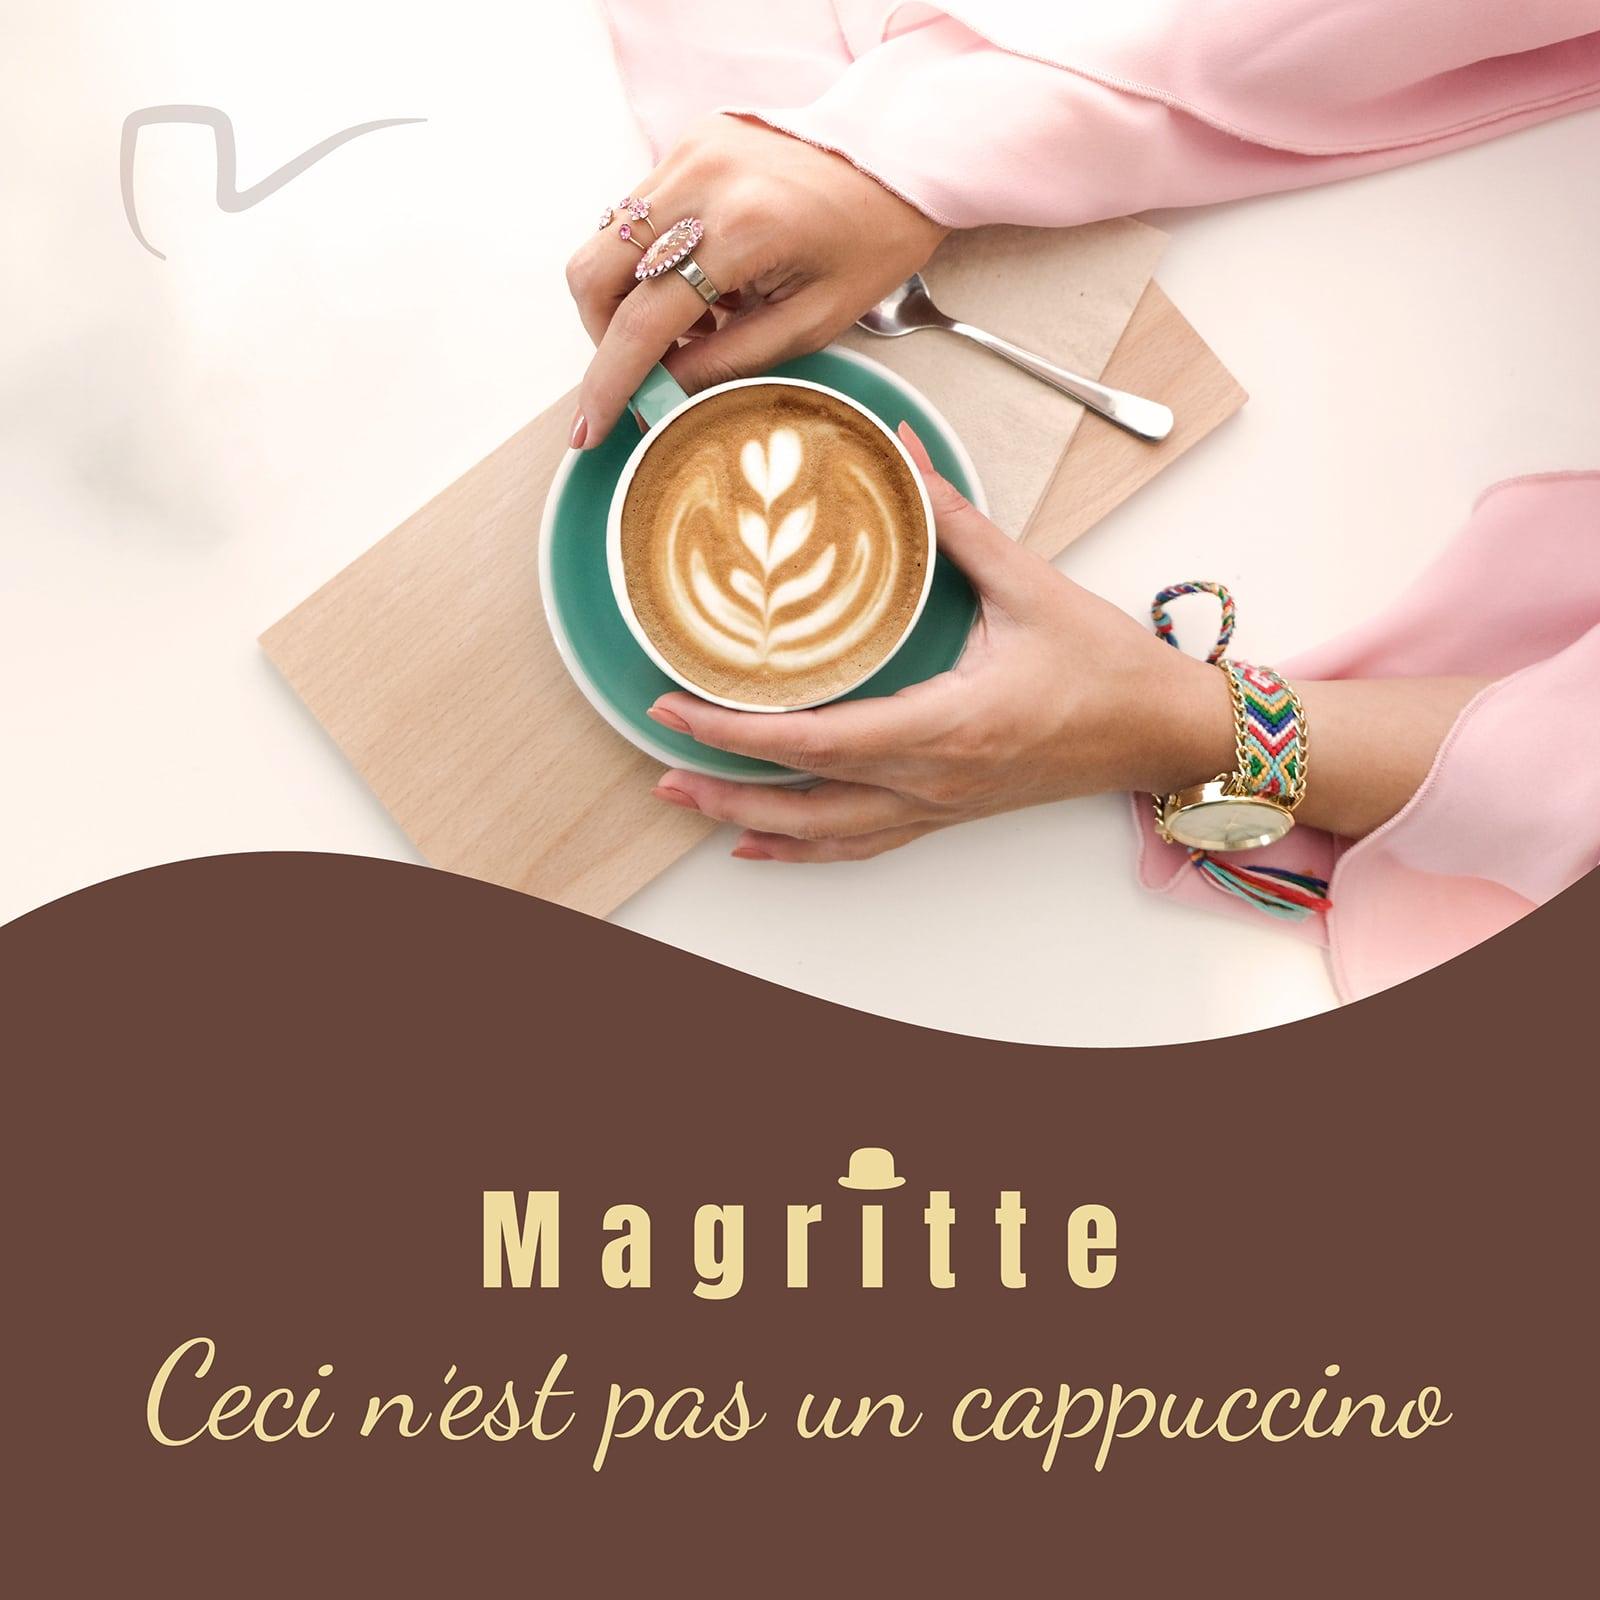 Magritte cappuccino